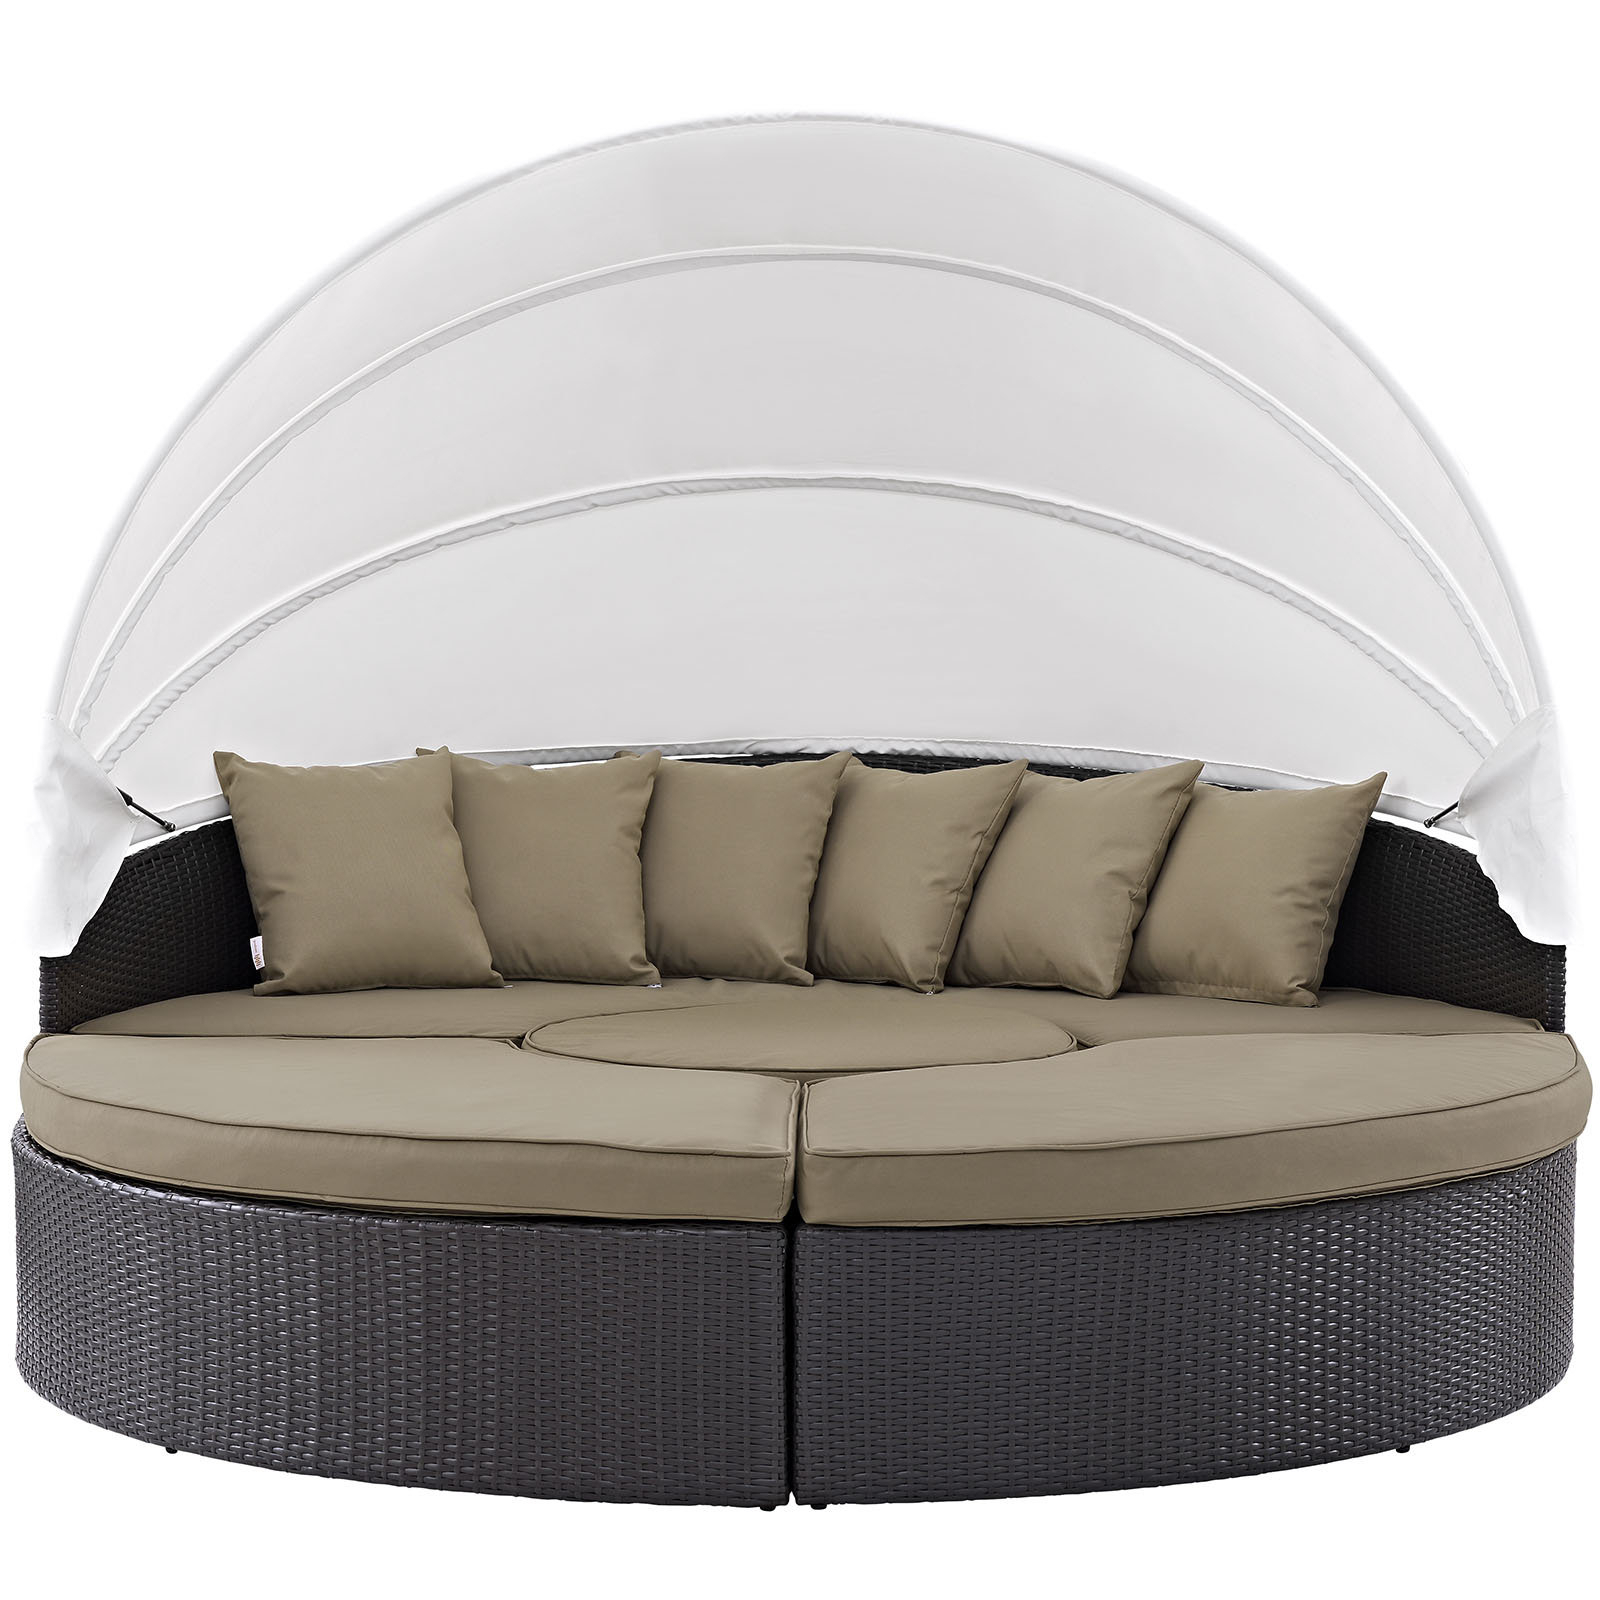 Brentwood Patio Daybed With Cushions Intended For 2019 Gilbreath Daybeds With Cushions (View 6 of 20)